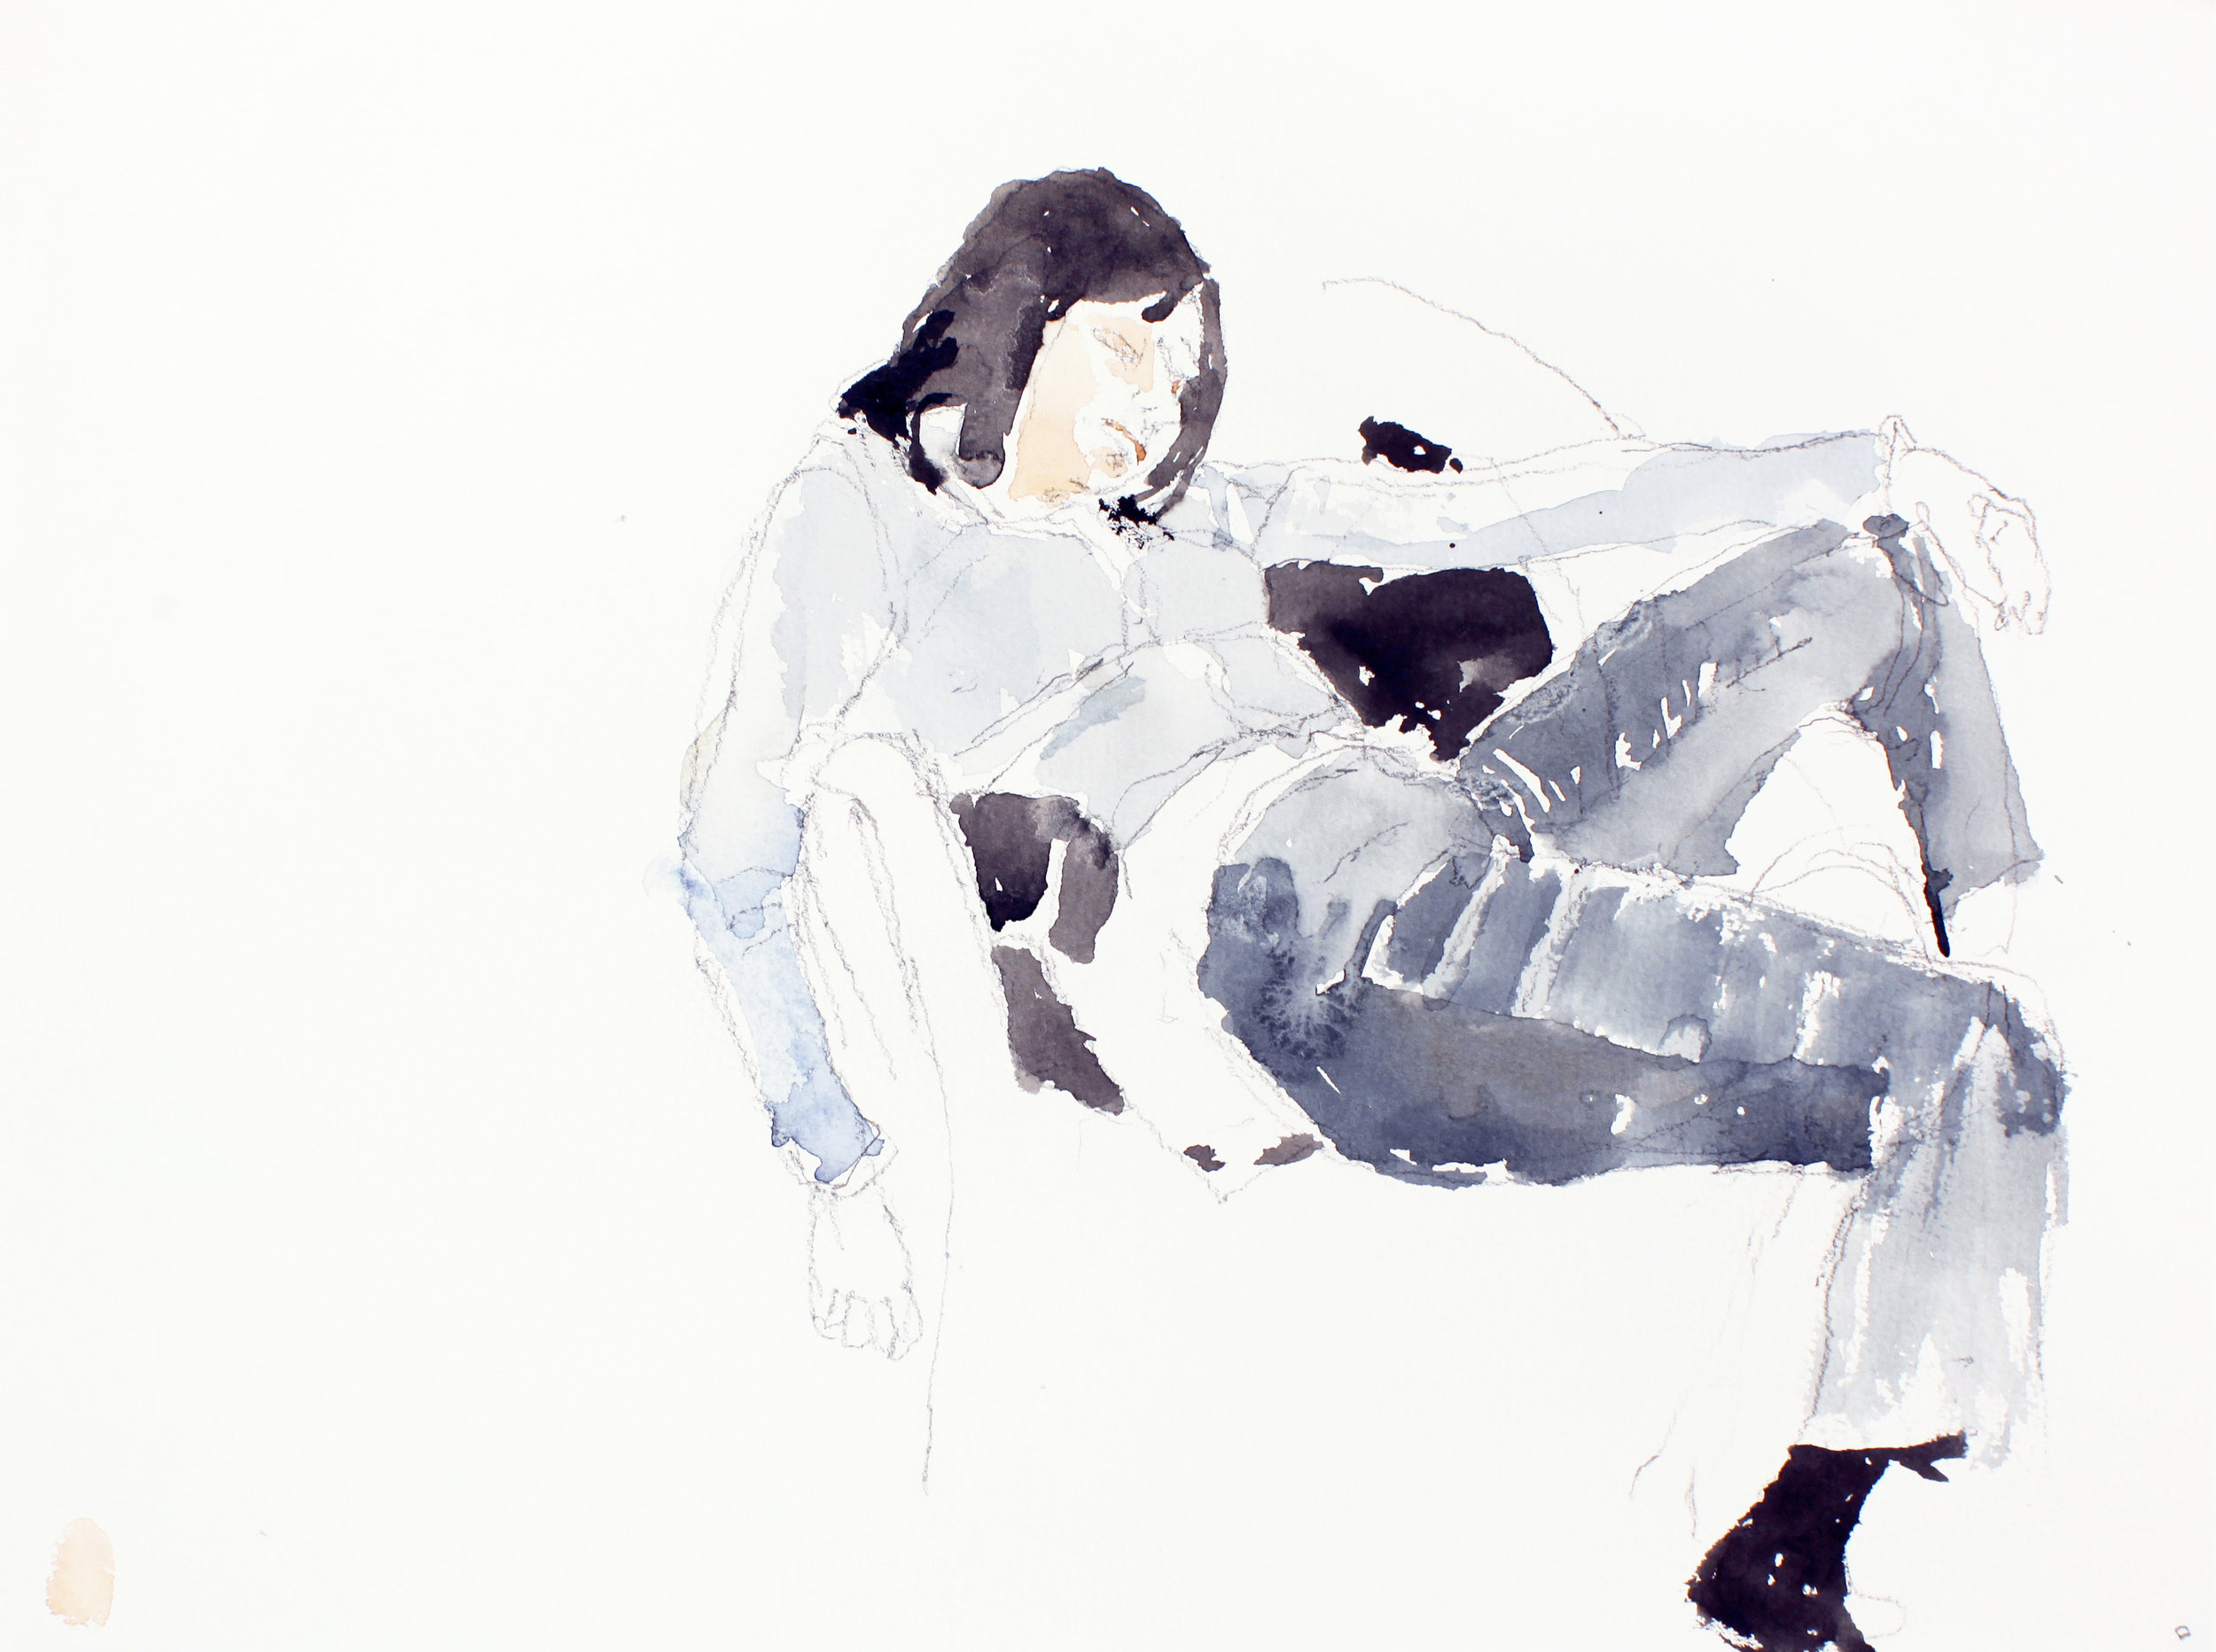 2007_Woman_in_Jeans_watercolour_and_pencil_on_paper_11x15in_WPF131.jpg